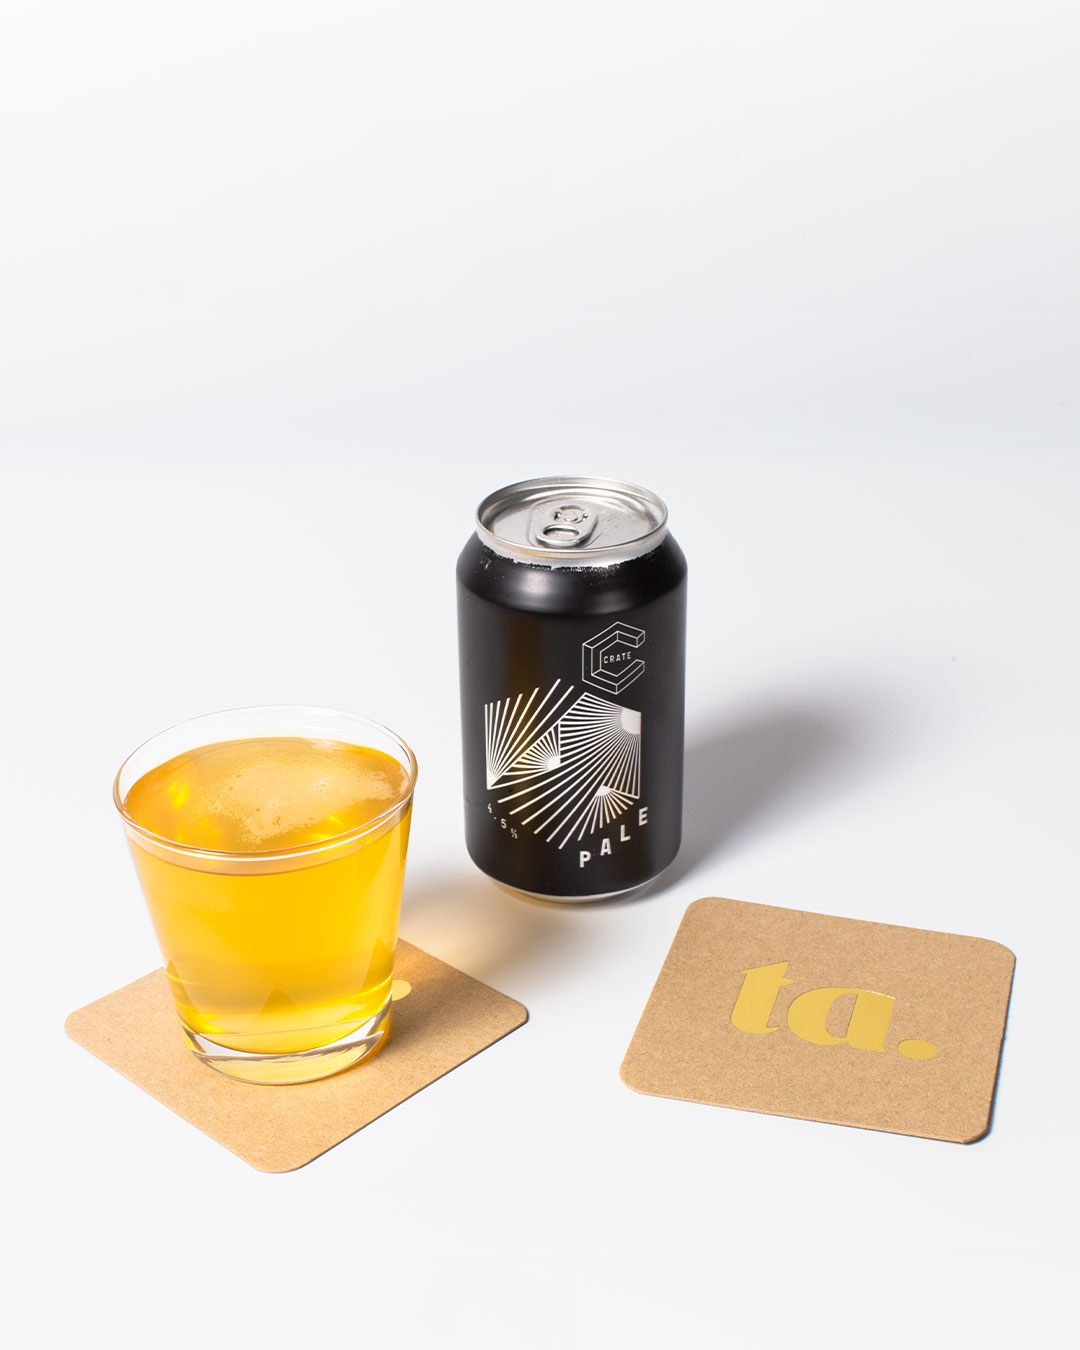 ta. beer coaters, beer in a glass & crate Pale Ale can